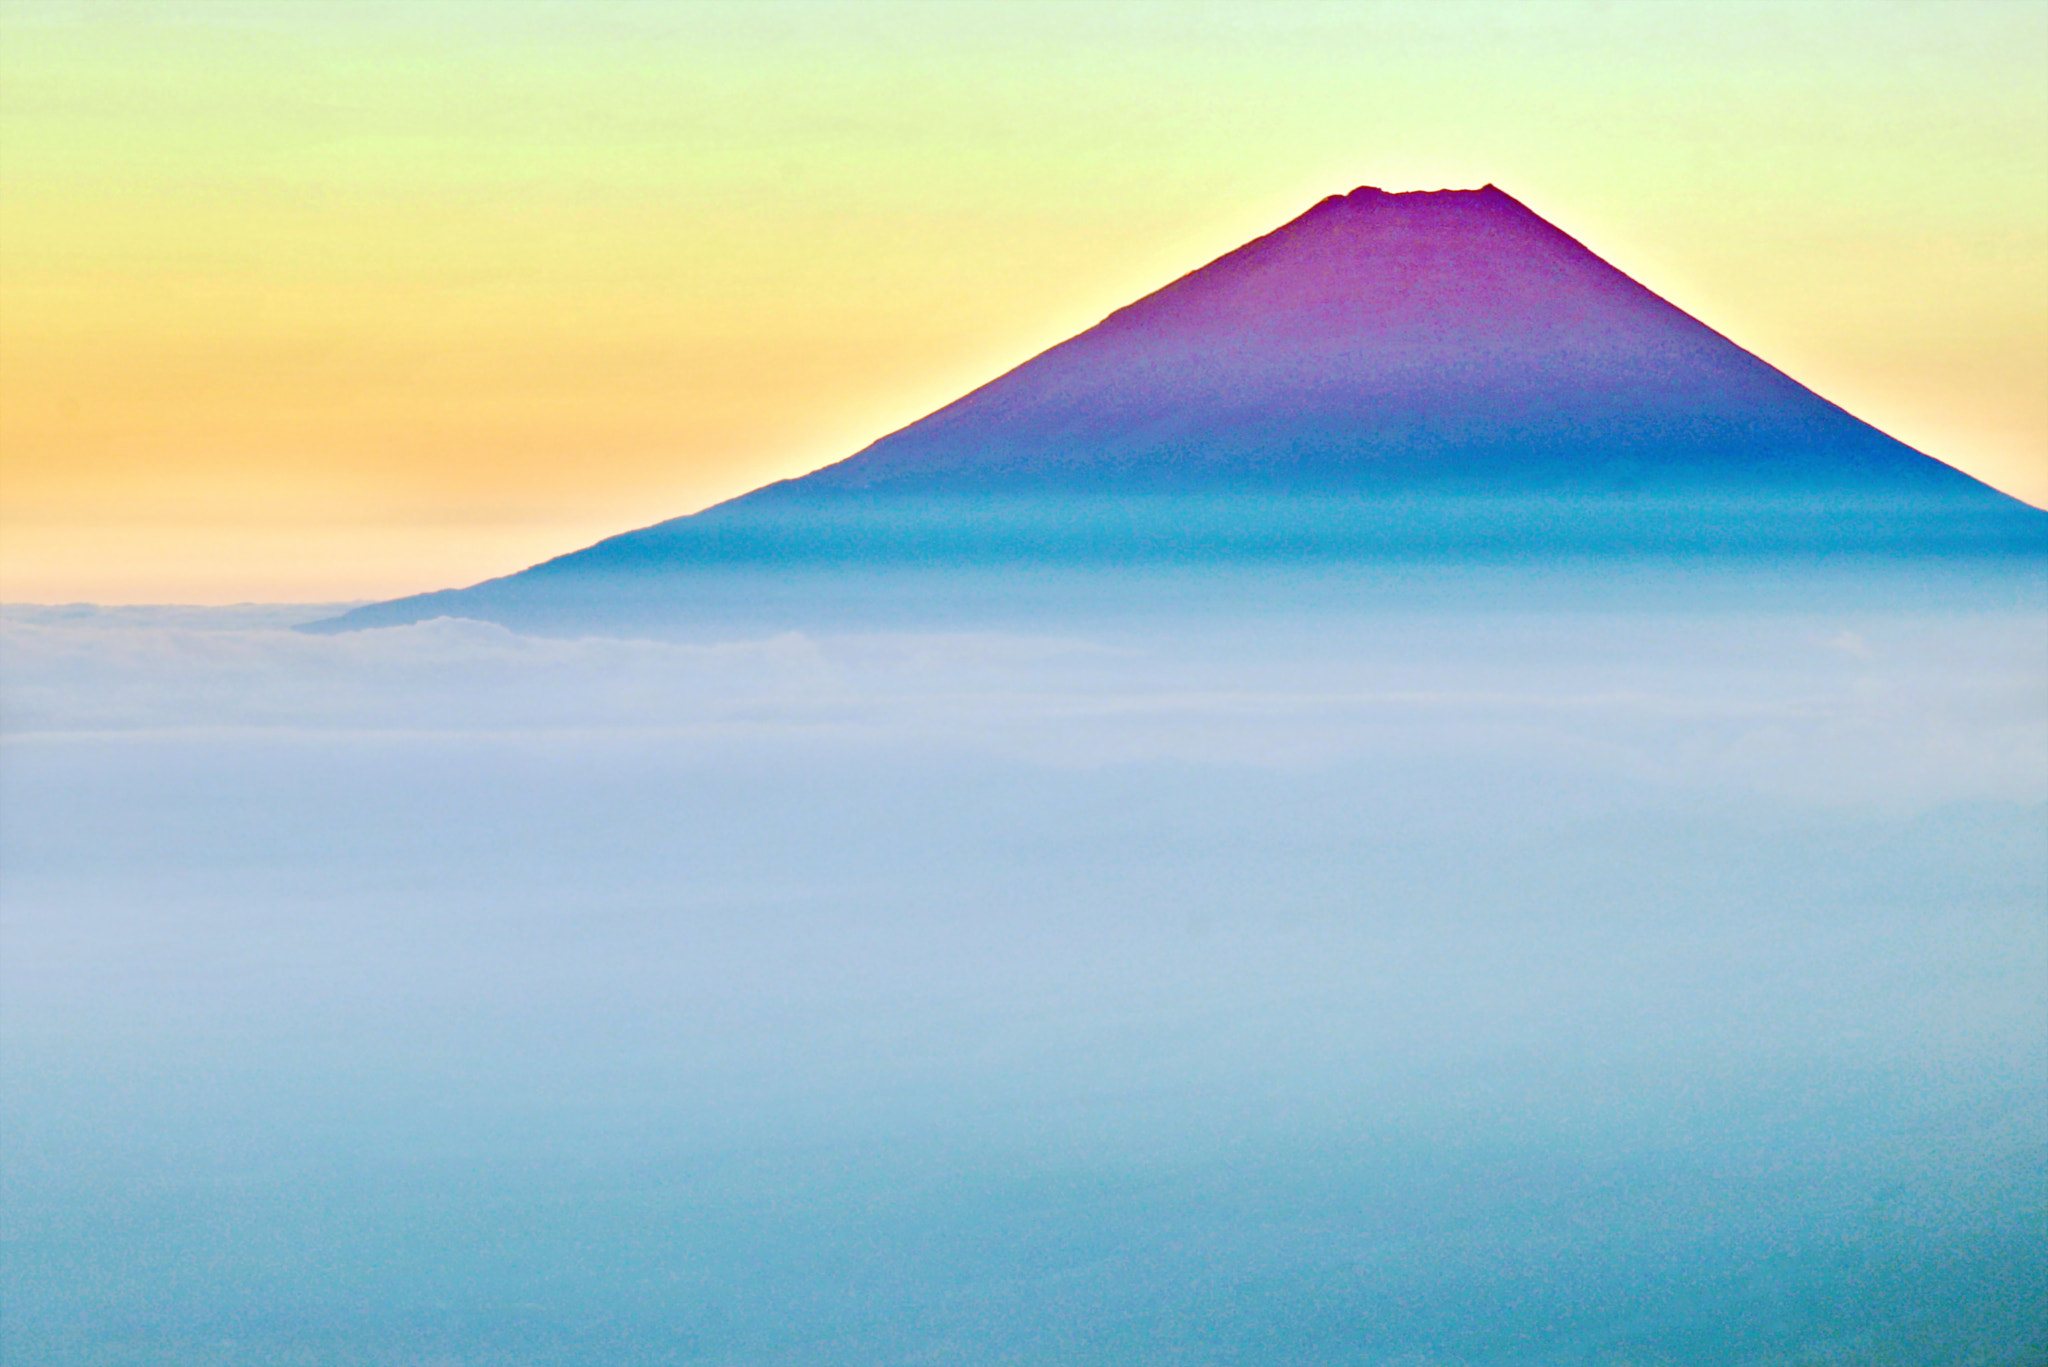 Photograph Red Mt.Fuji, the attire miraculous! by KEN OHSAWA on 500px